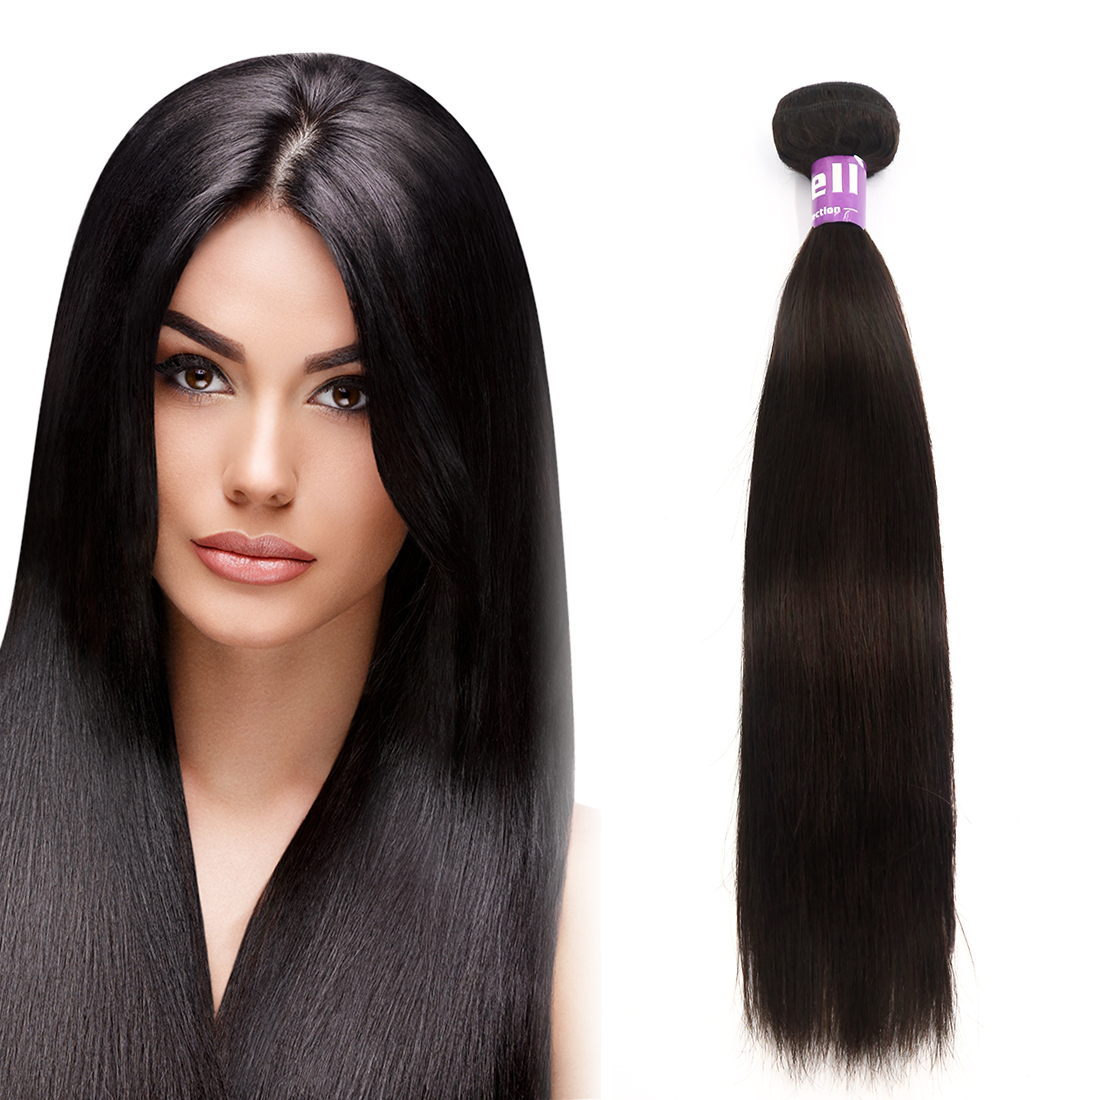 "Peruvian Virgin Silky Straight Human Hair Weave Extensions 7A 16"" 1 Bundle"